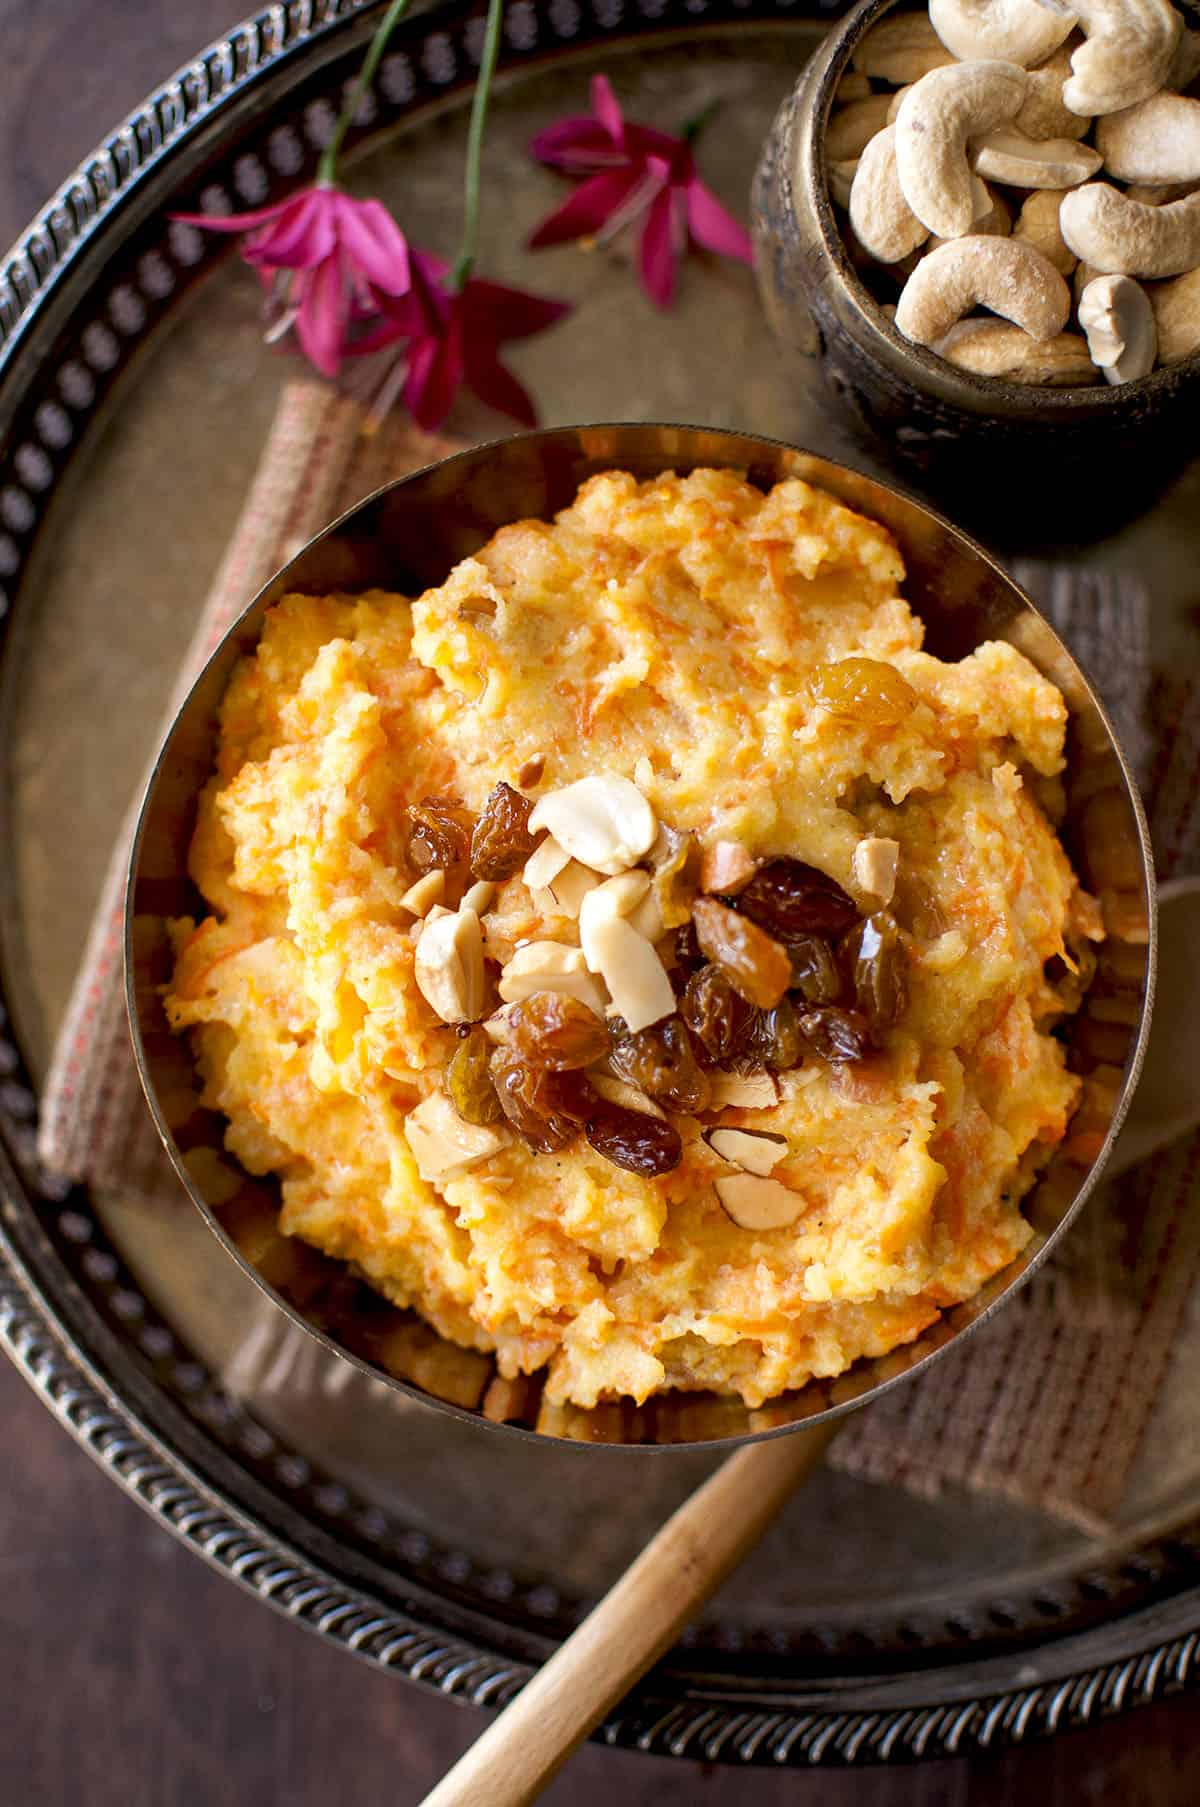 Brass bowl with shahi halwa with carrots topped with raisins and nuts